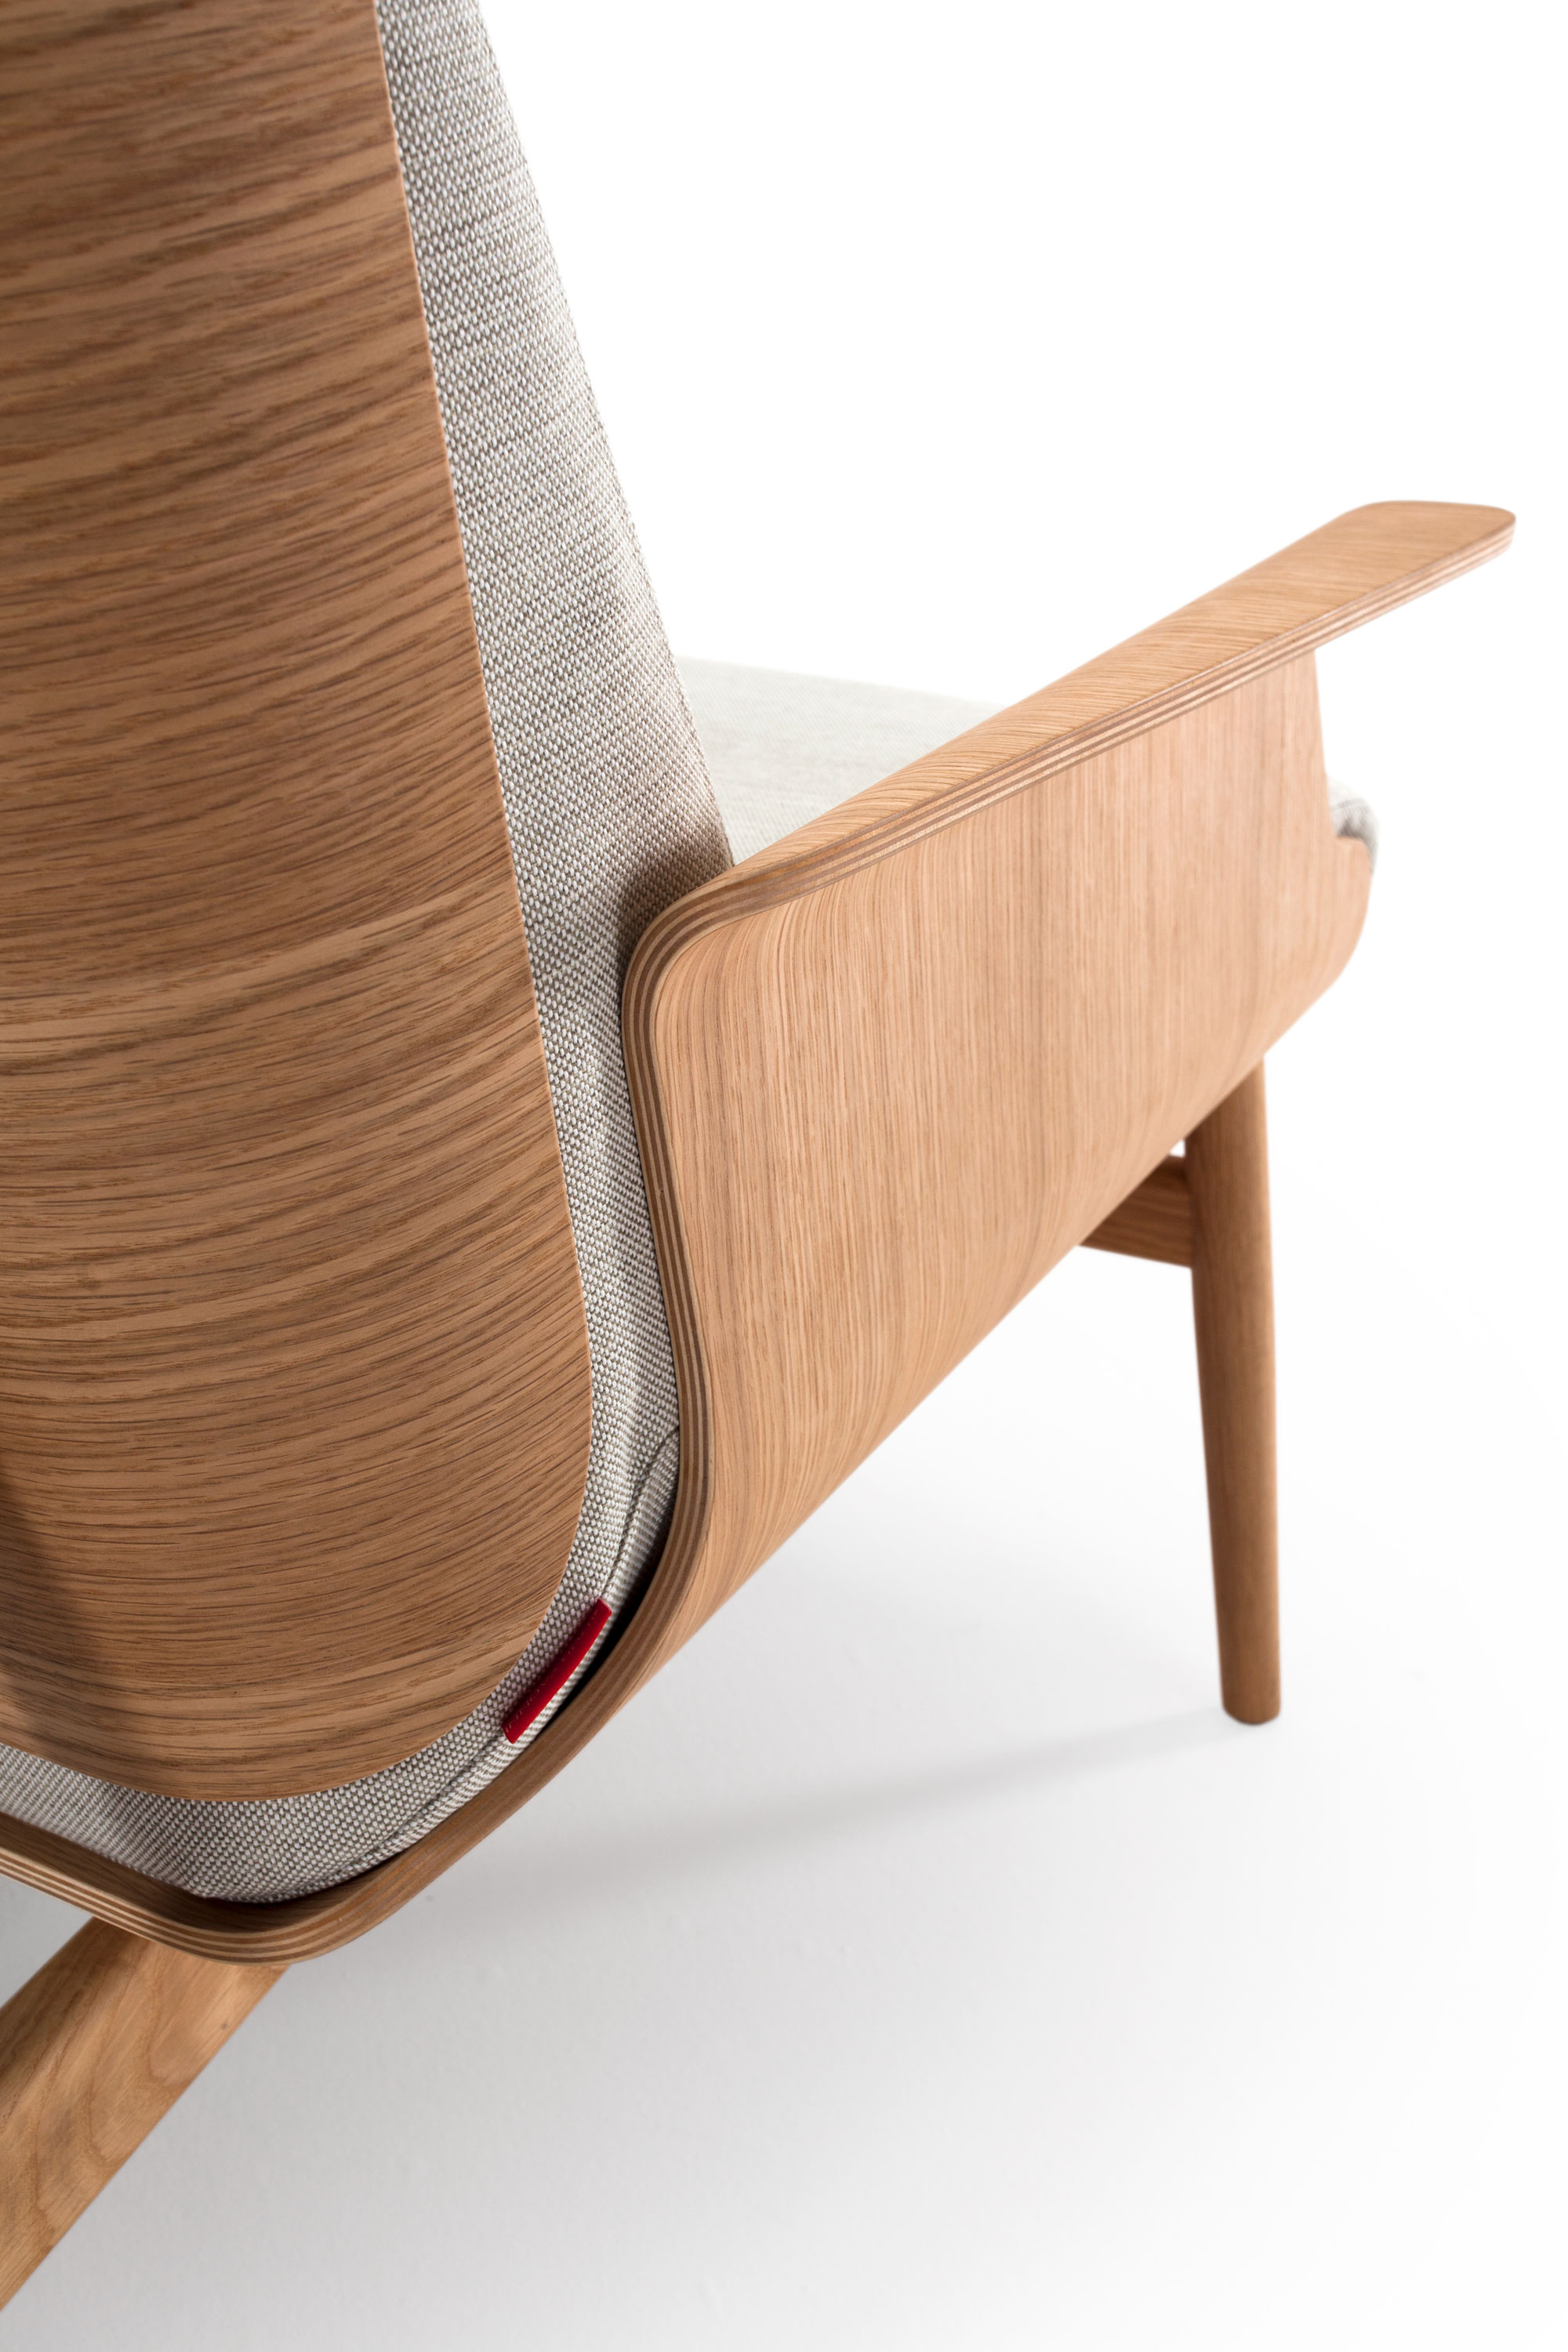 saga-lounge-chair-oliver-lukas-weisskrogh.jpg